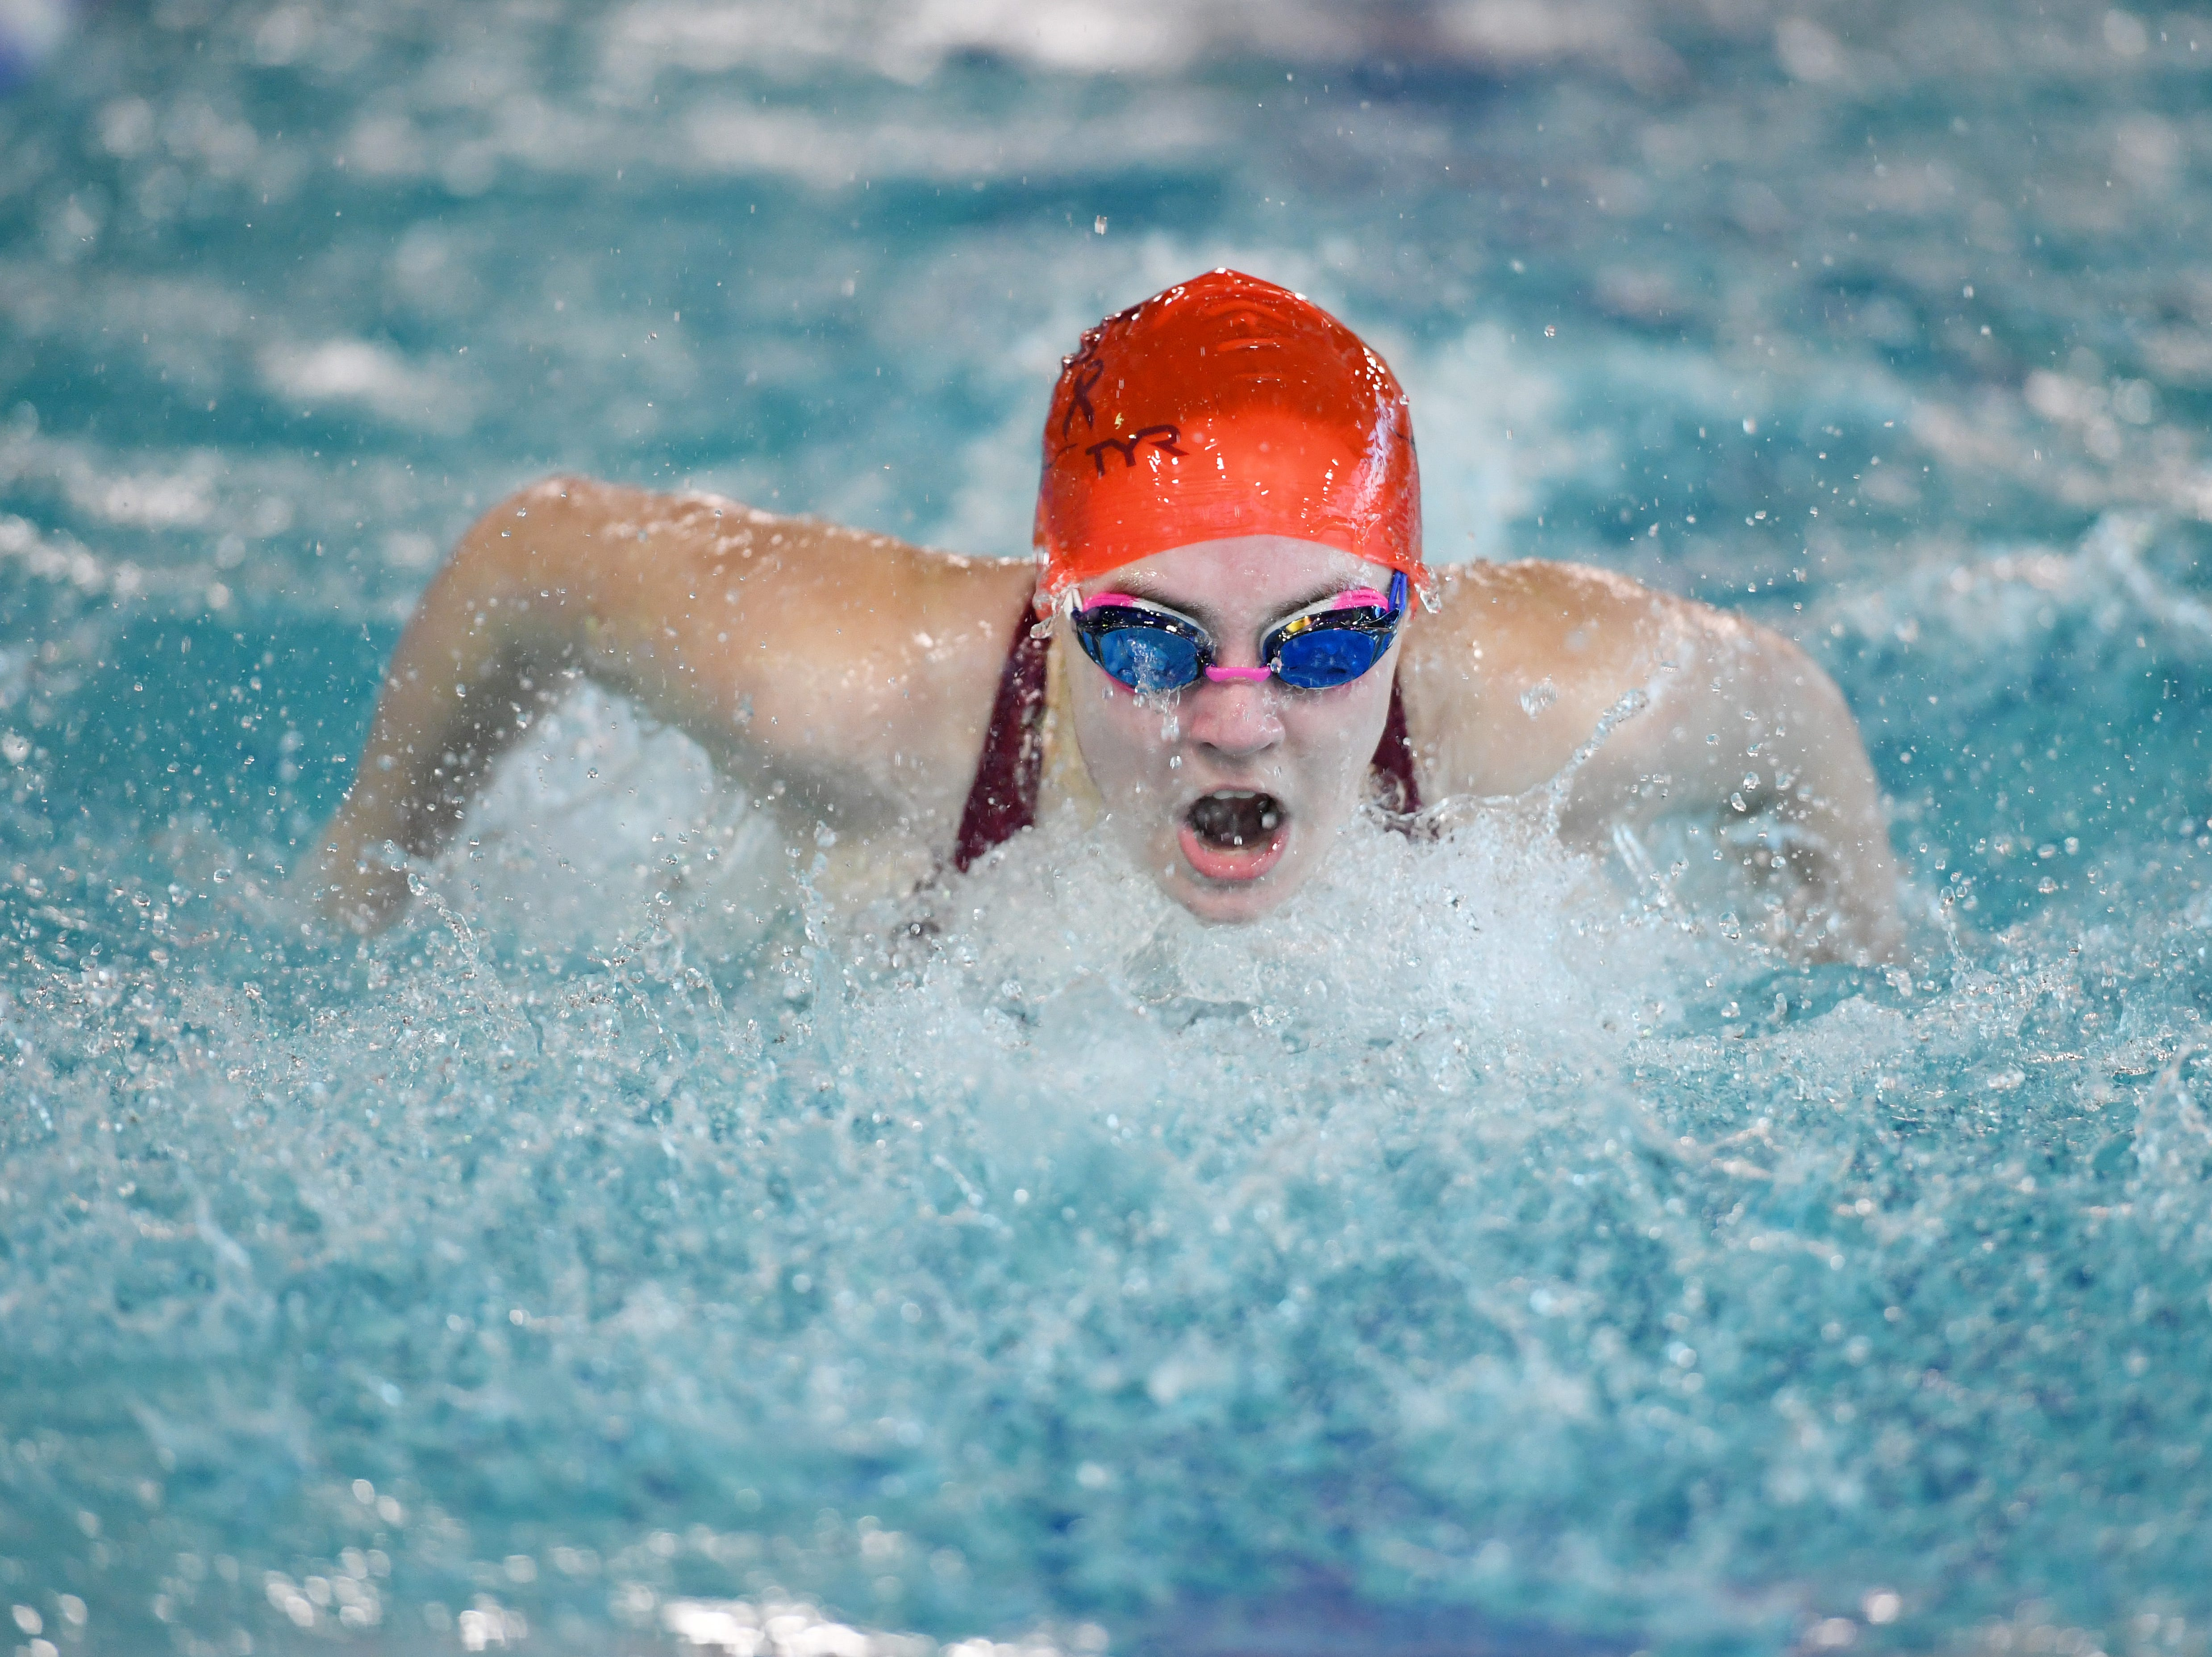 NJSIAA swimming sectional finals: Morristown vs Montclair in North I-A at Passaic County Technical Institute on Friday, February 15, 2019. Molly Webber, of Morristown, in the 100 Fly.